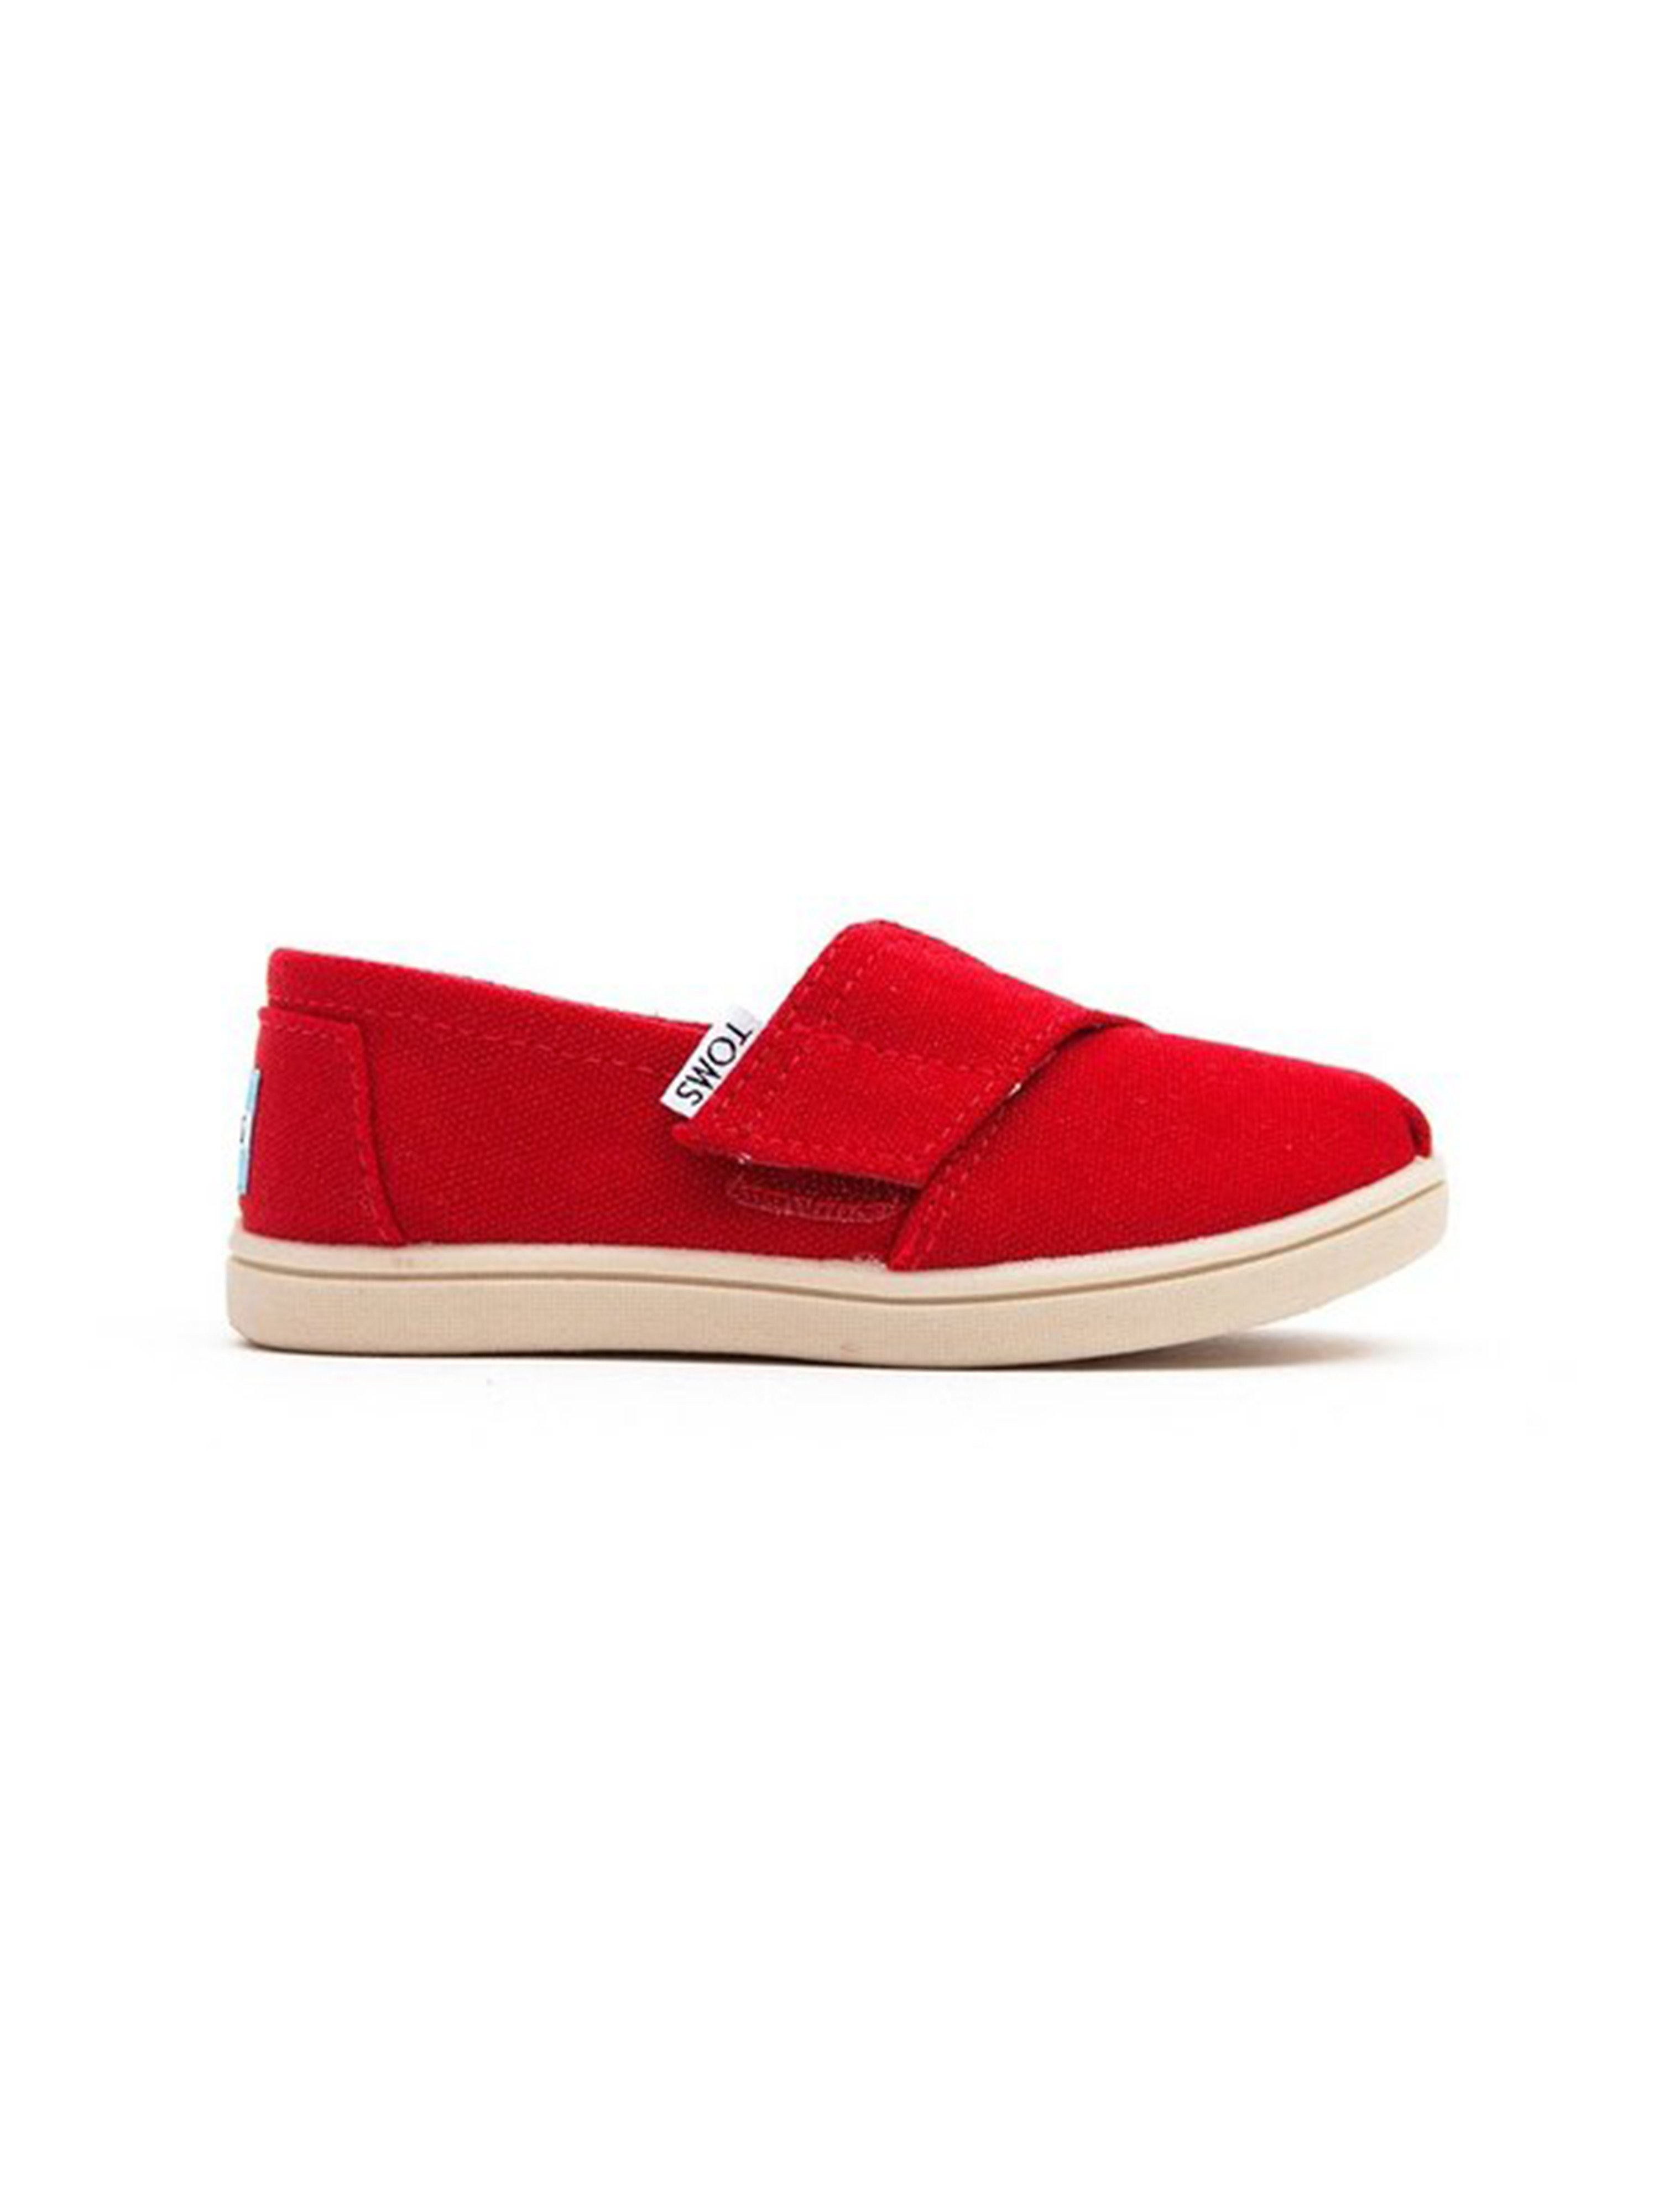 Toms Kid's Classic Canvas Velcro Shoes - Red